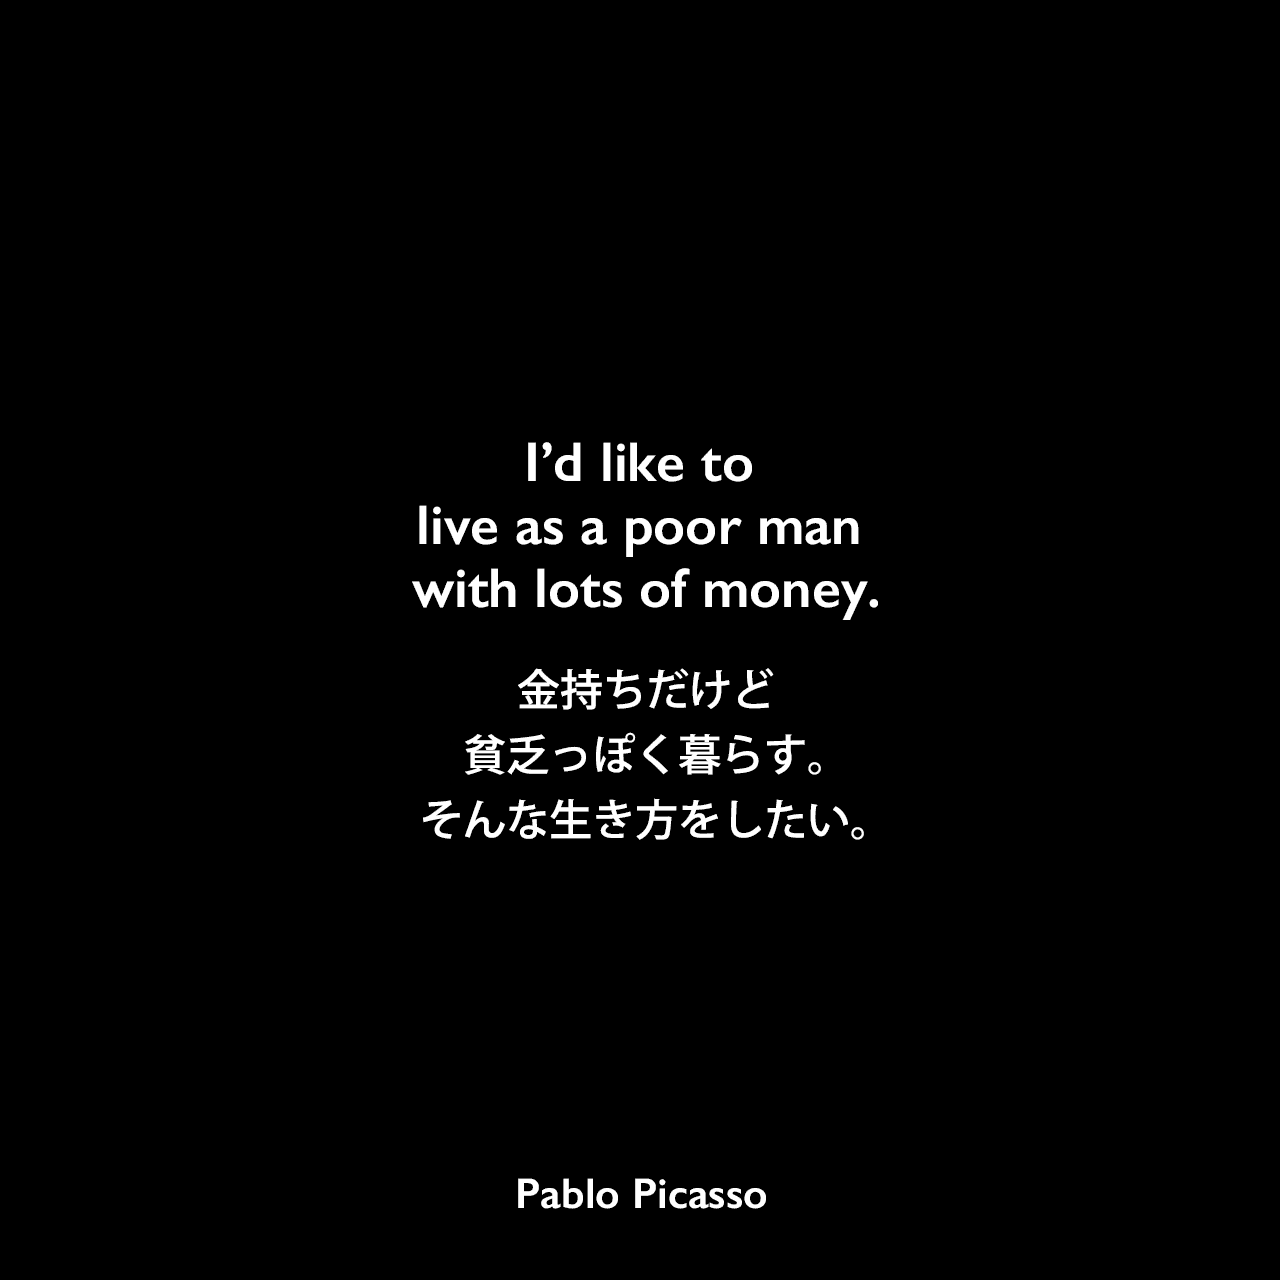 I'd like to live as a poor man with lots of money.金持ちだけど貧乏っぽく暮らす。そんな生き方をしたい。Pablo Picasso